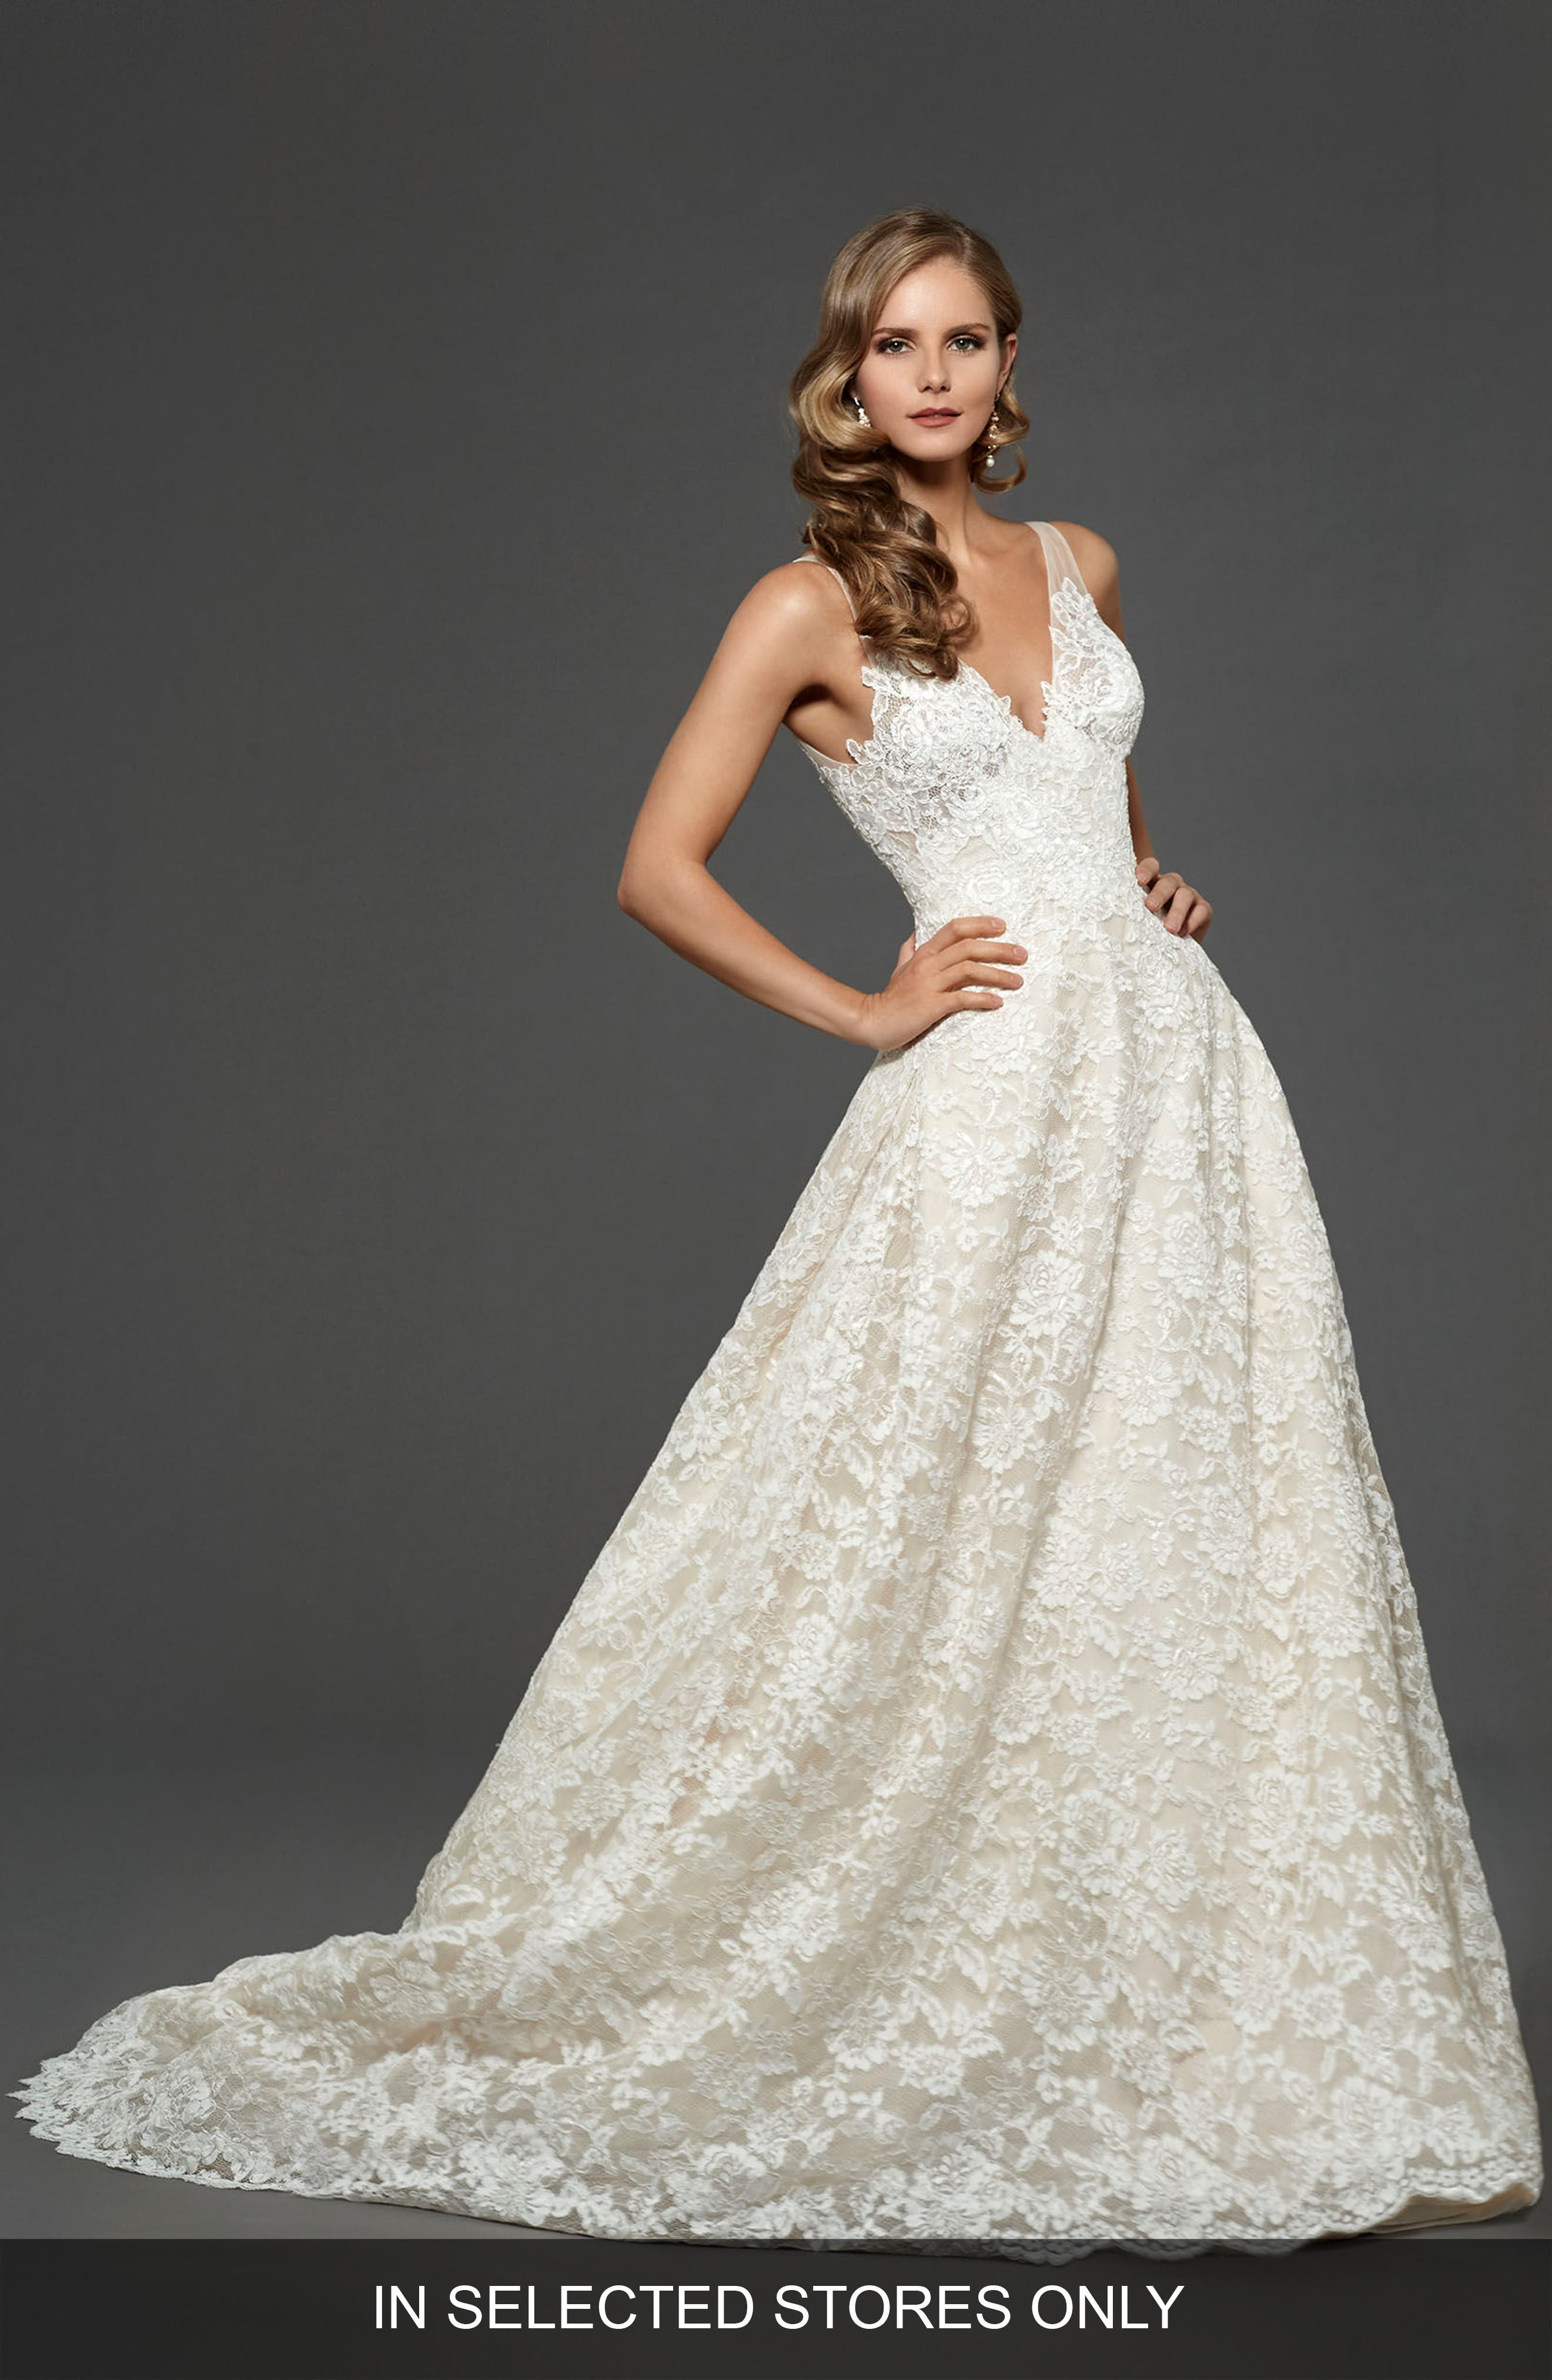 Suzanna Allover Lace Gown,                             Main thumbnail 1, color,                             900